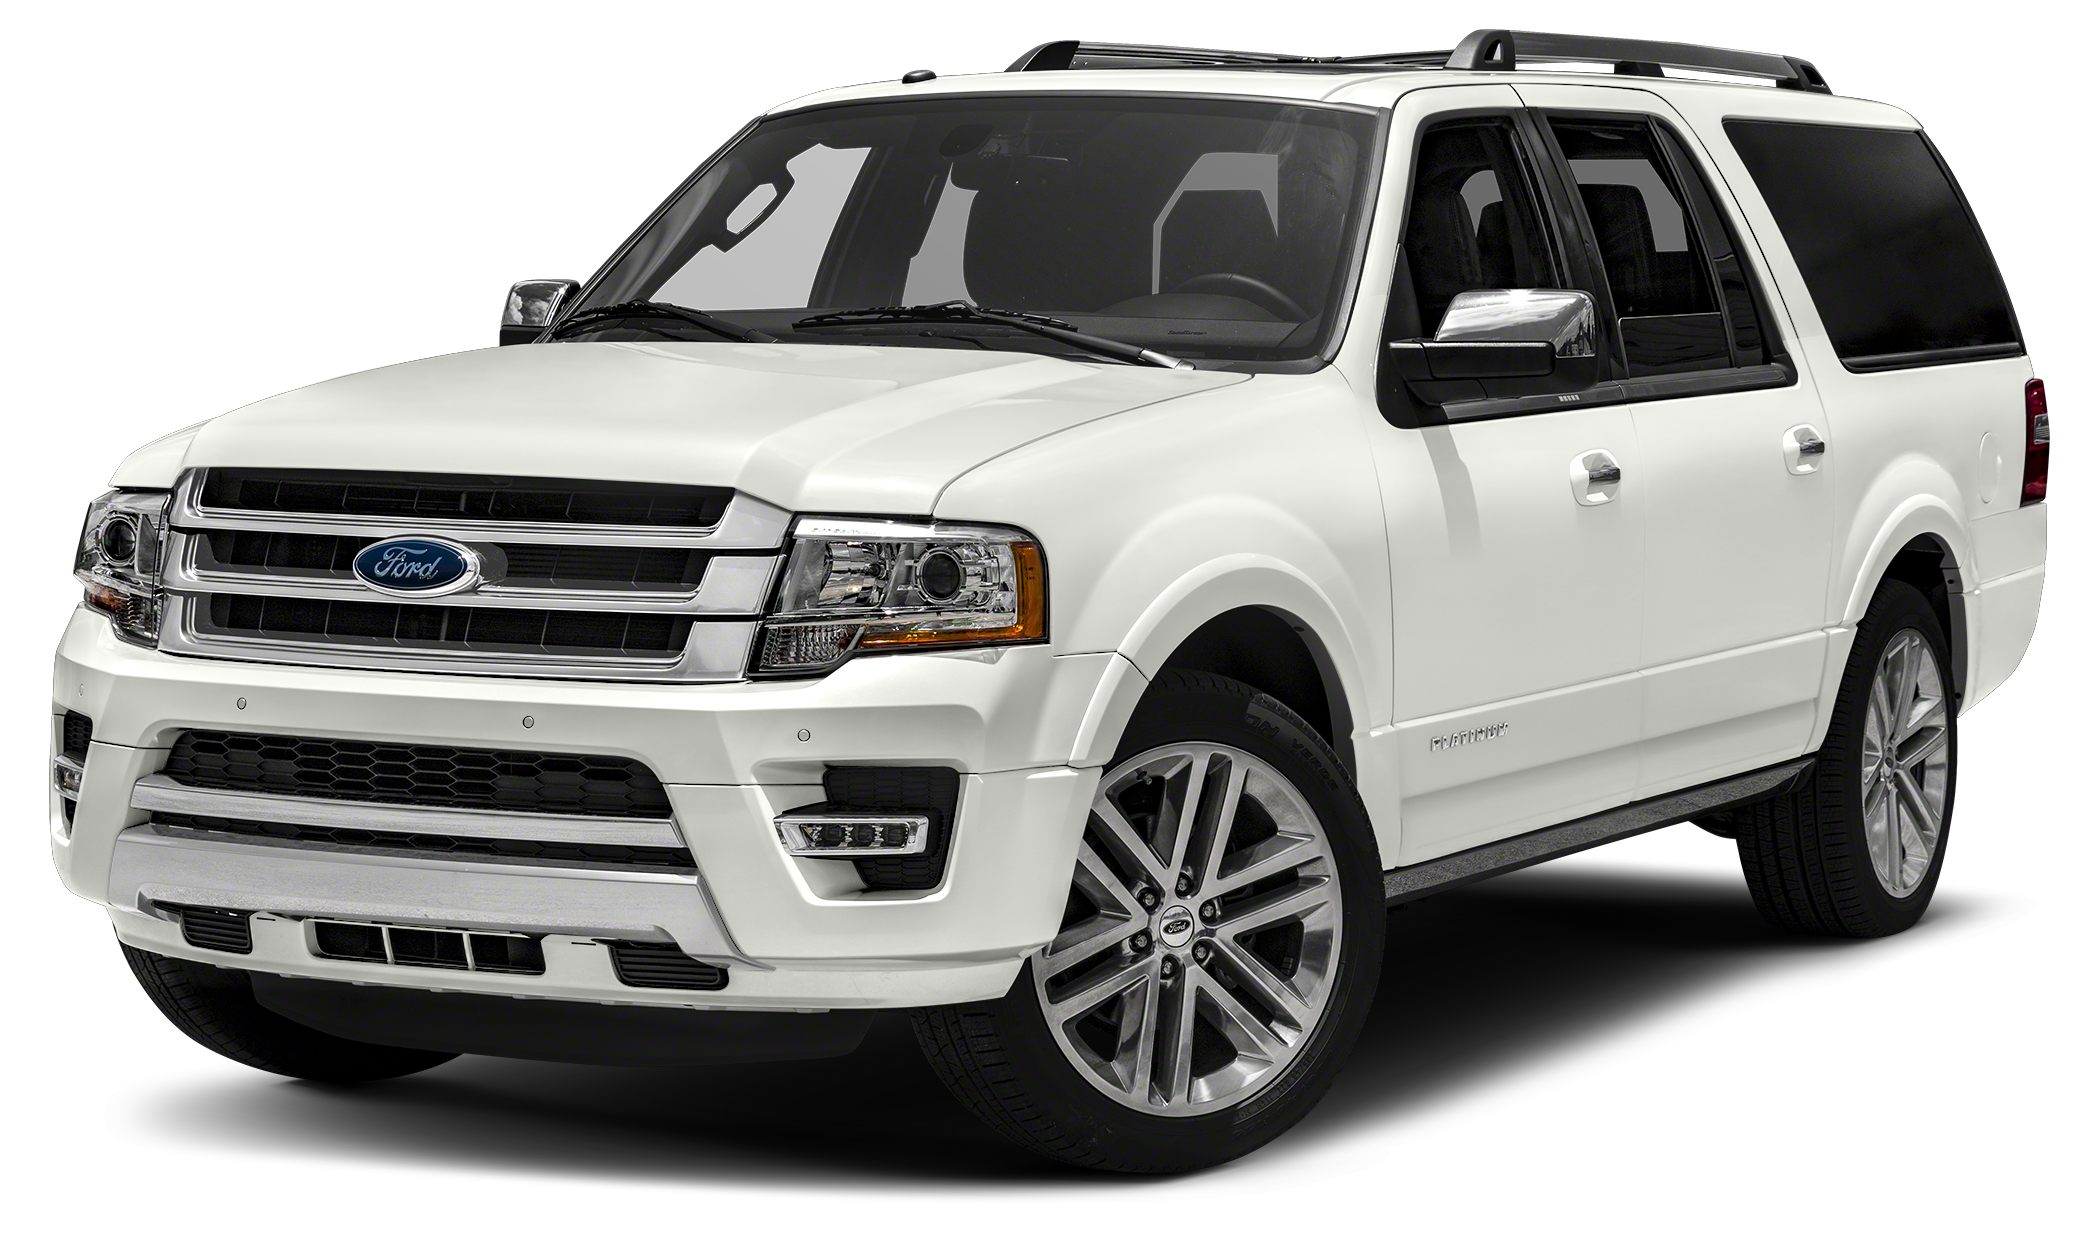 2017 Ford Expedition EL Platinum The Ford Expedition features a new aggressive front end creates a